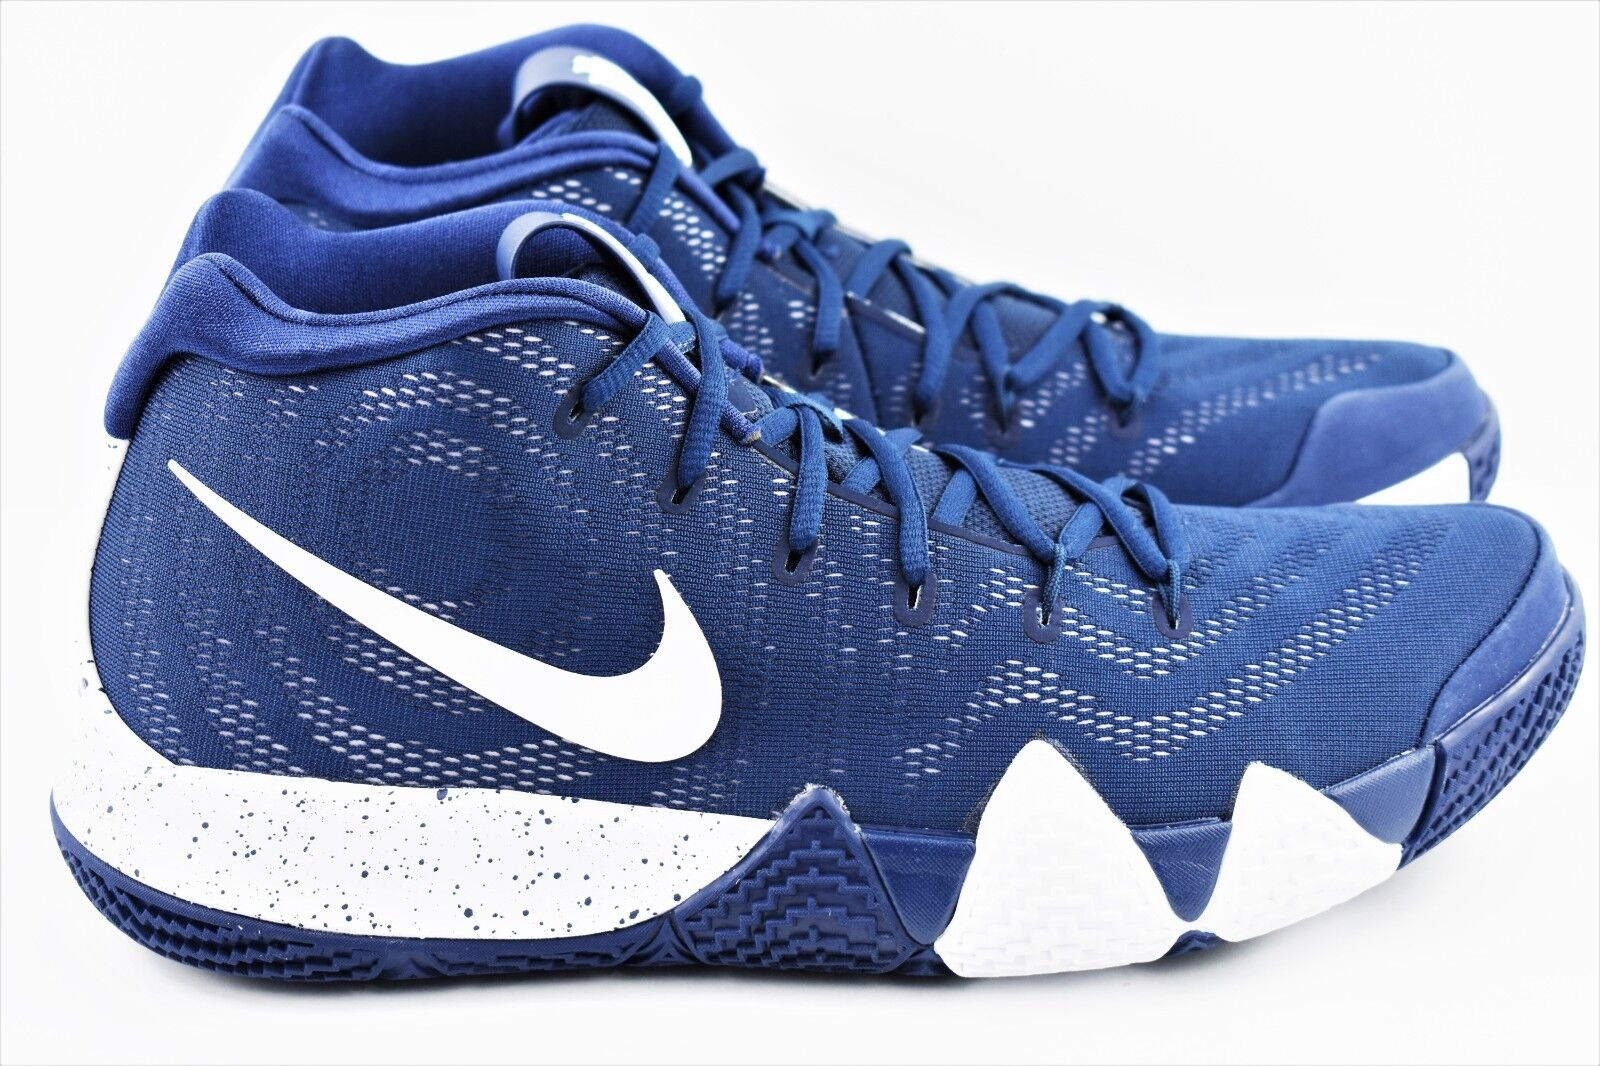 Nike Kyrie 4 TB Mens Size 13 Basketball shoes bluee Bank Collection AV2296 402